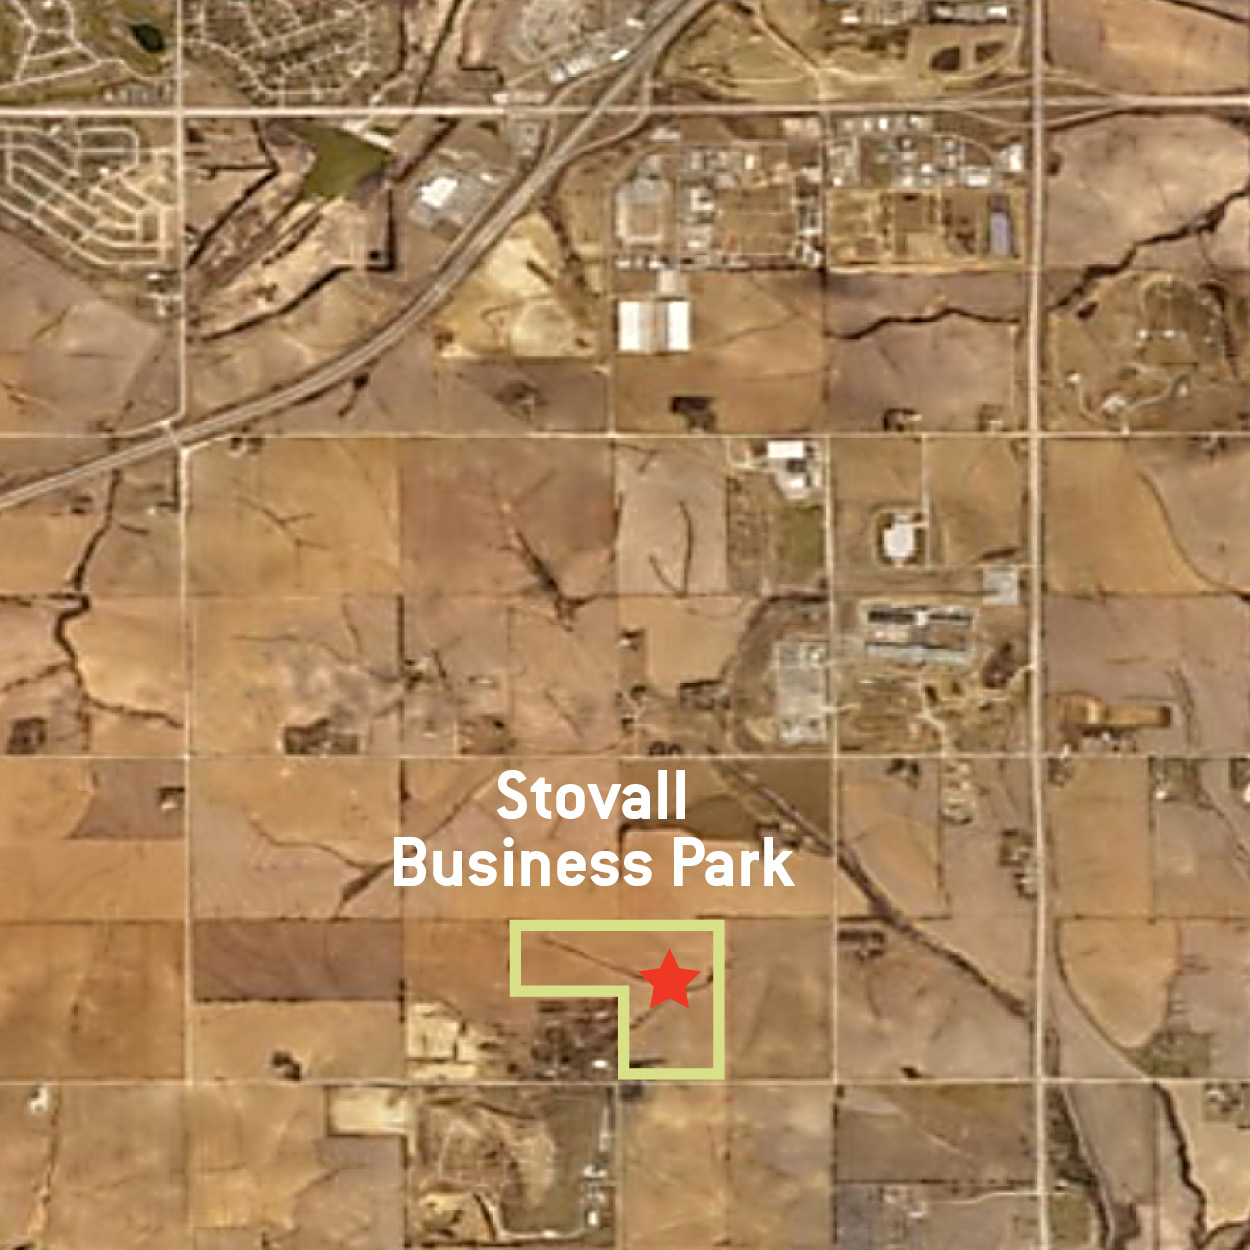 Stovall Business Park